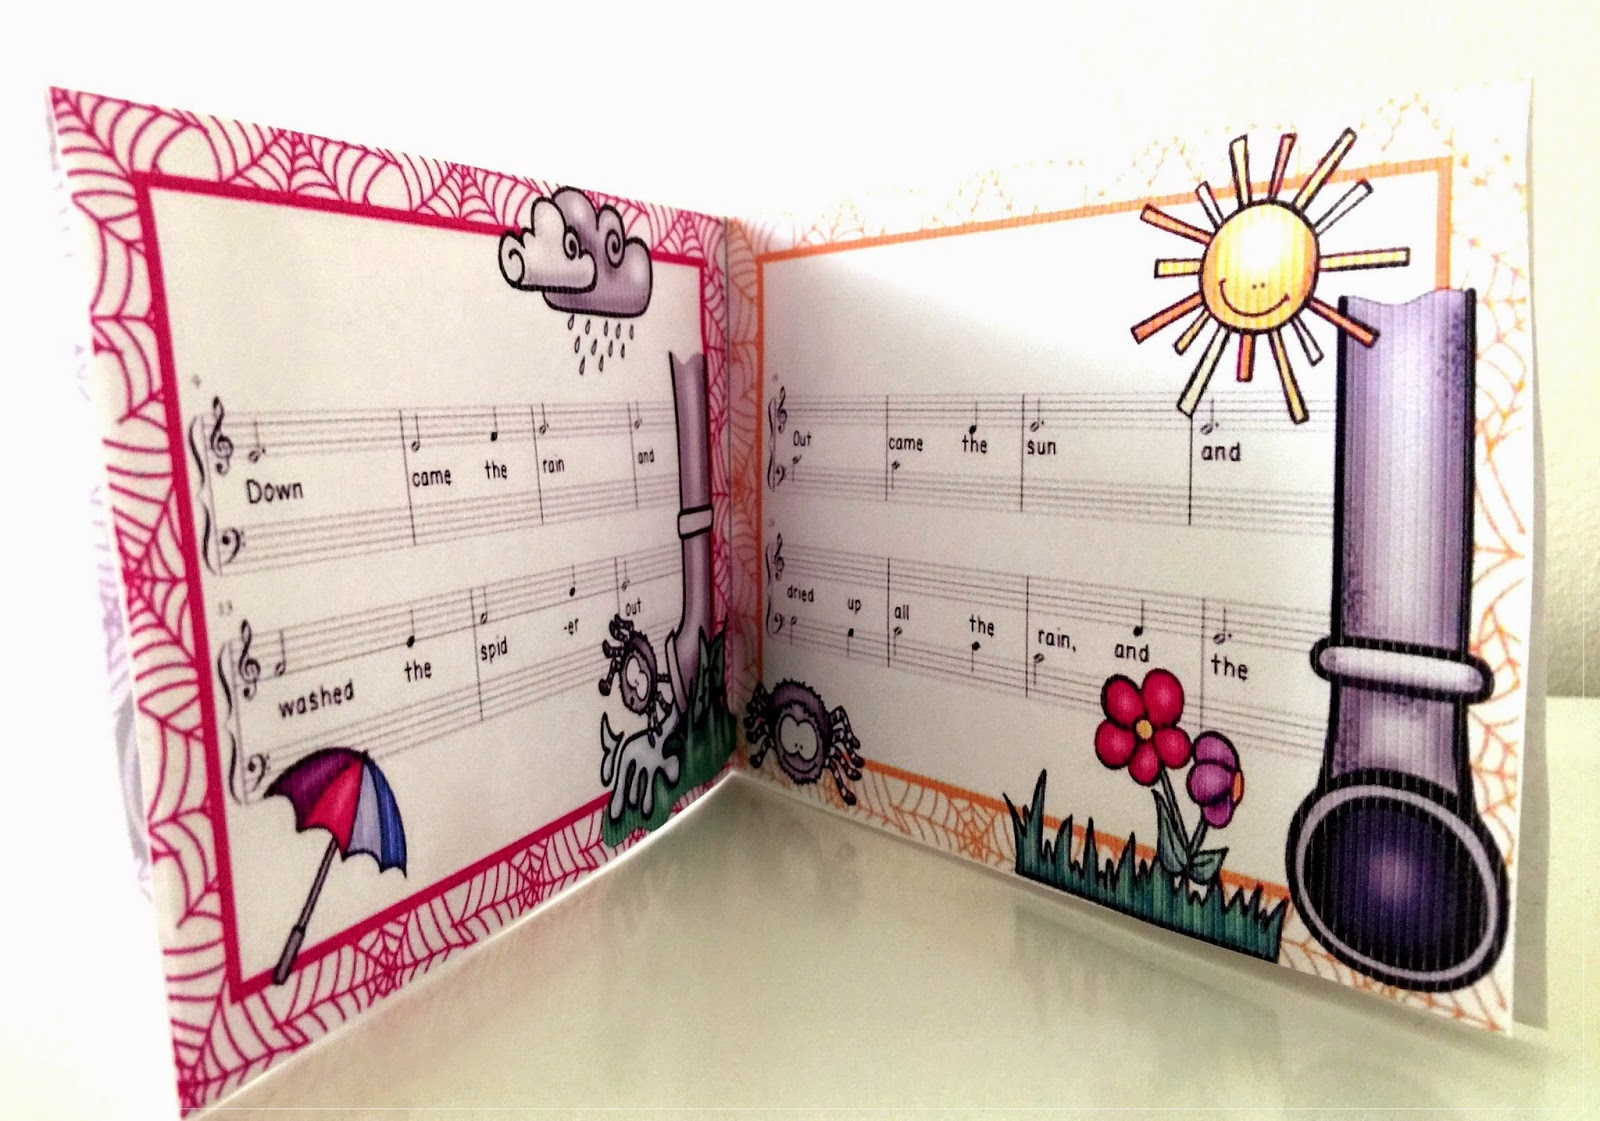 Hord S Studio Itsy Bitsy Spider Music Book Incy Wincy Spider